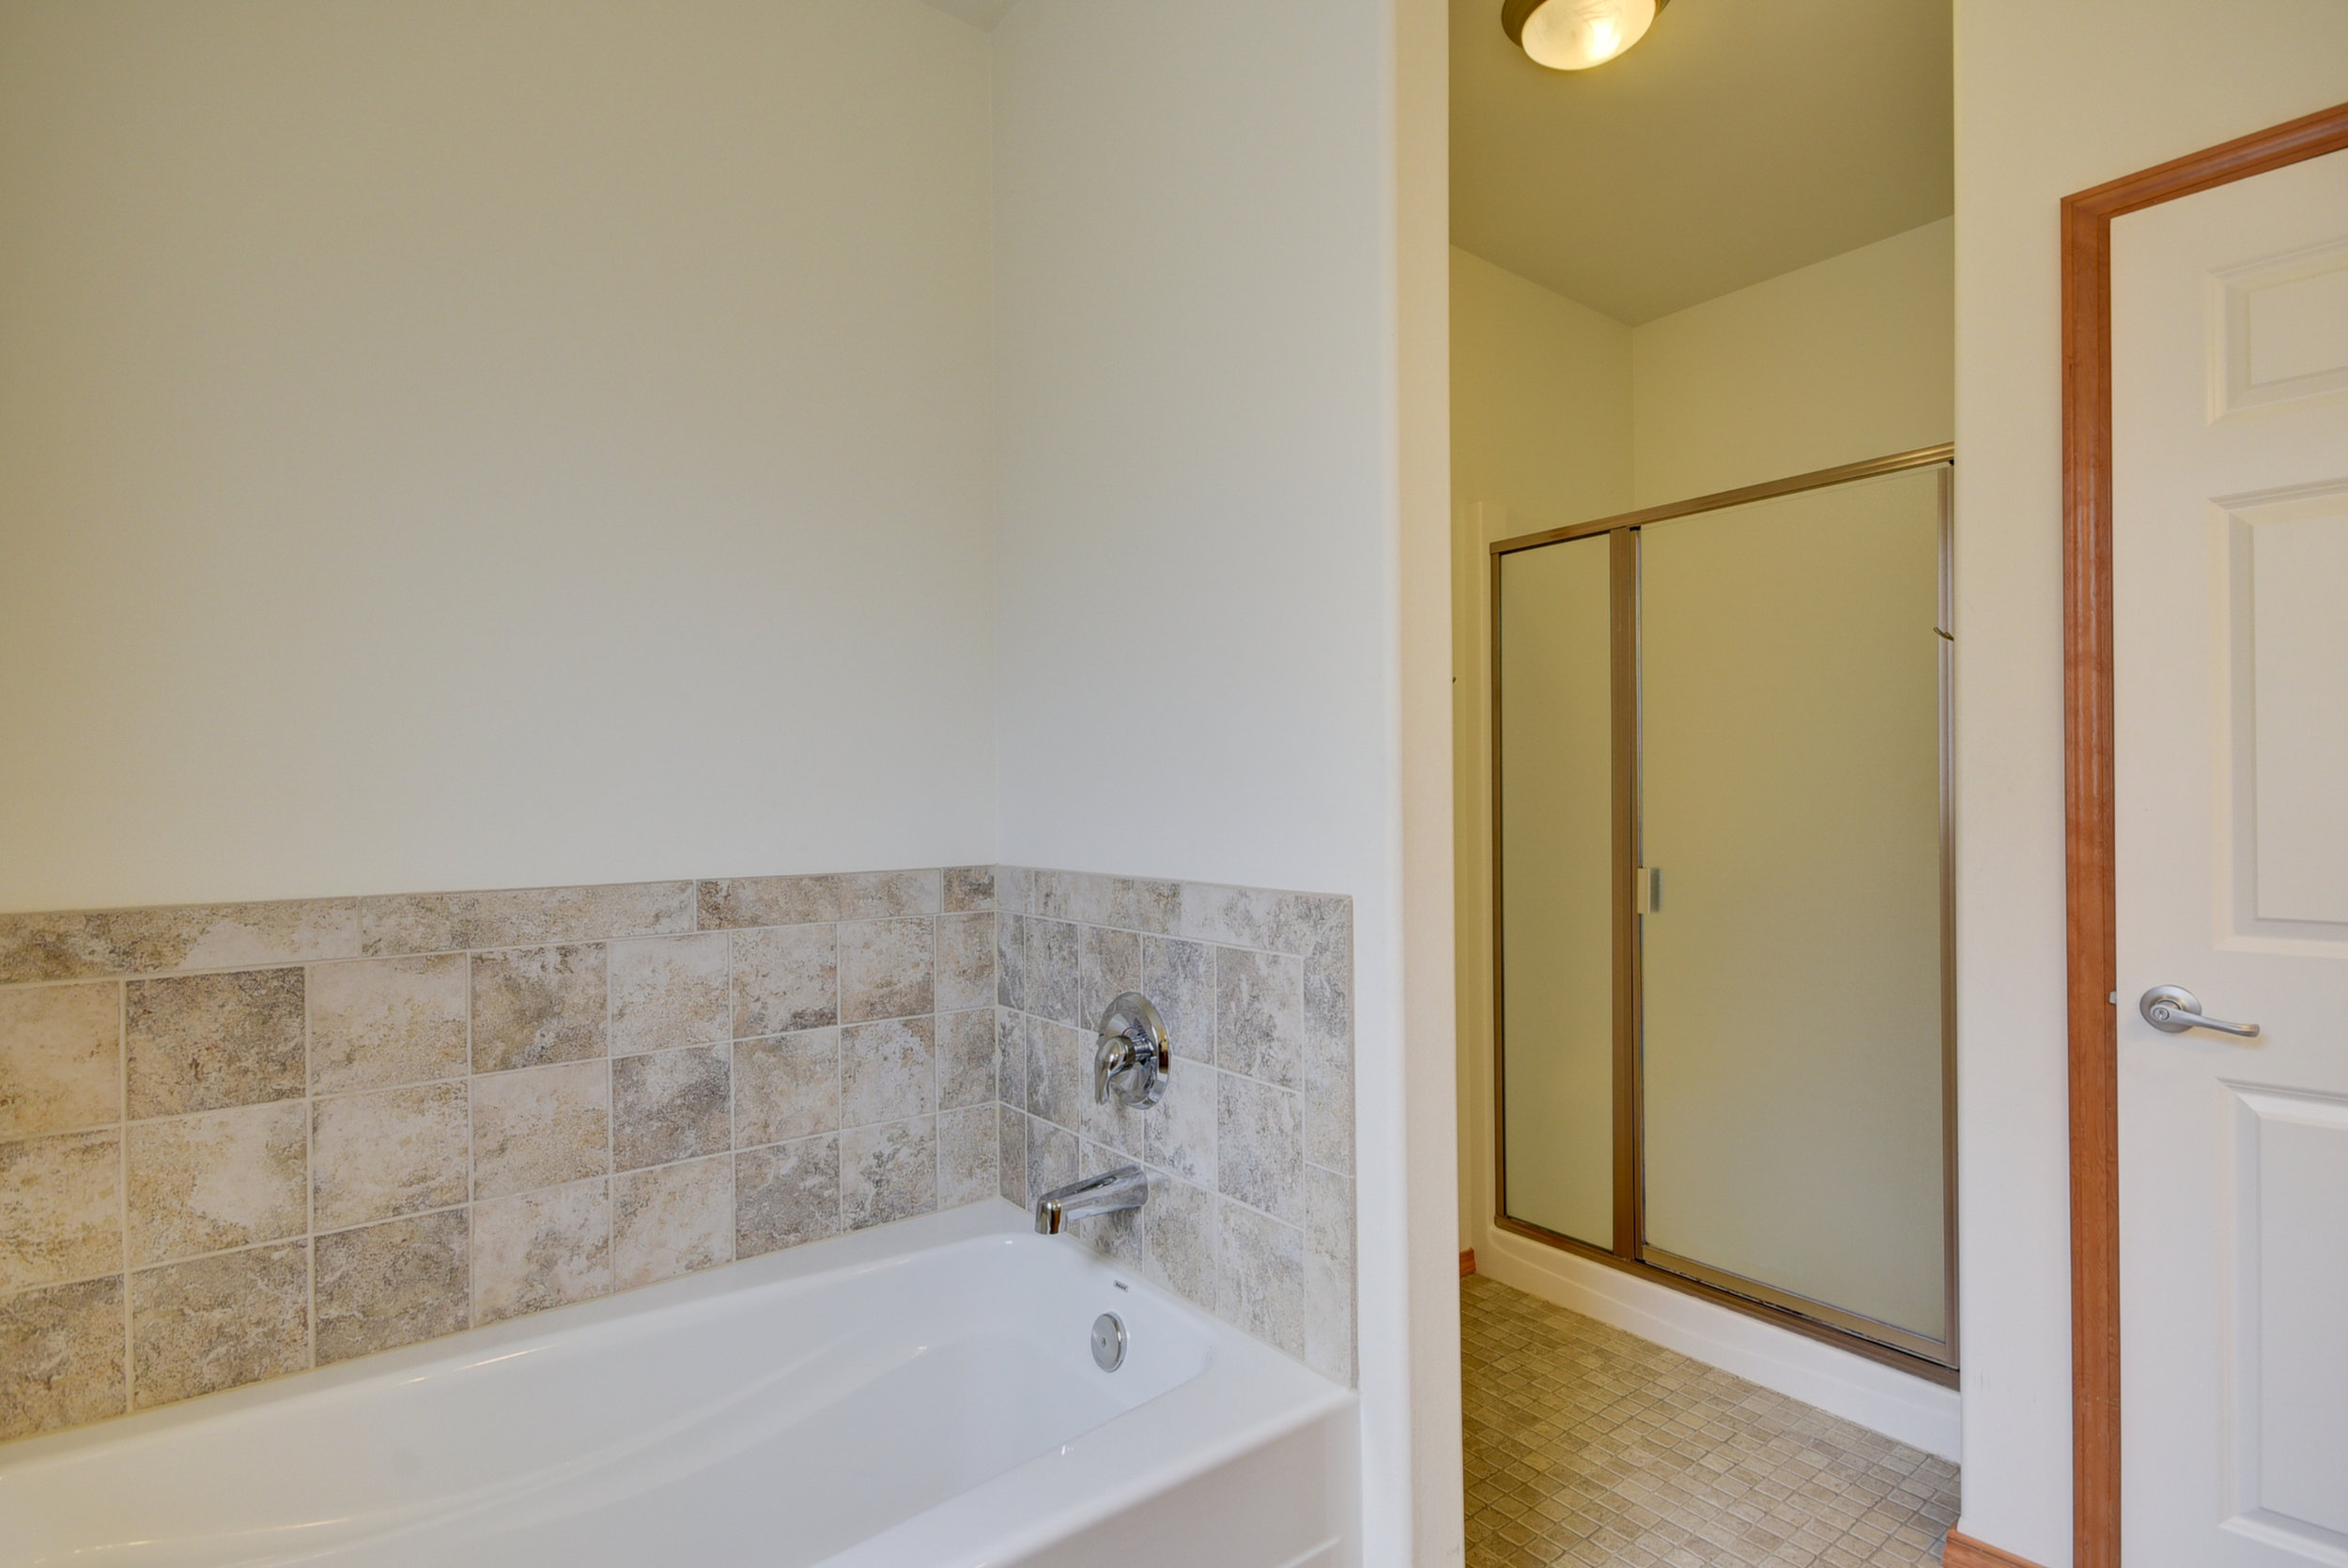 Master suite with soaking tub, shower, & linen closet...wow!